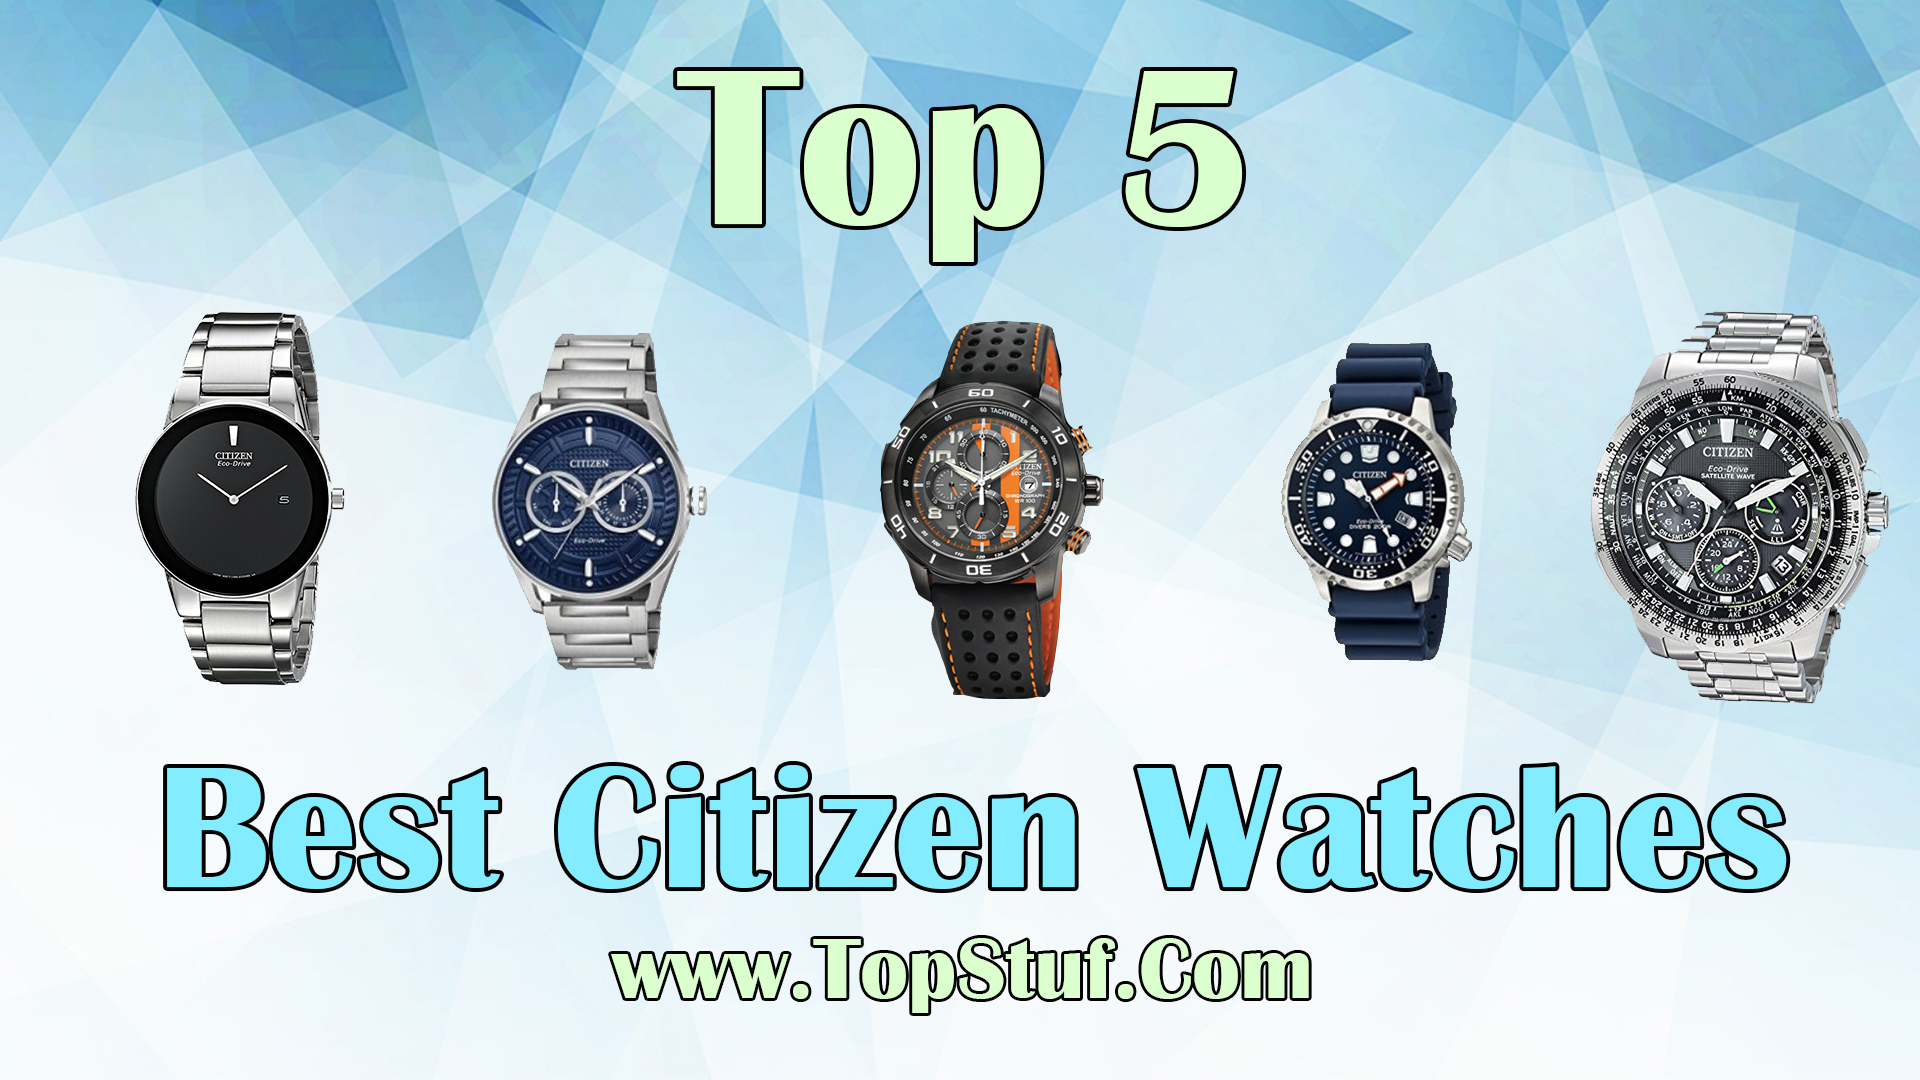 Top 5 Best Citizen Watches